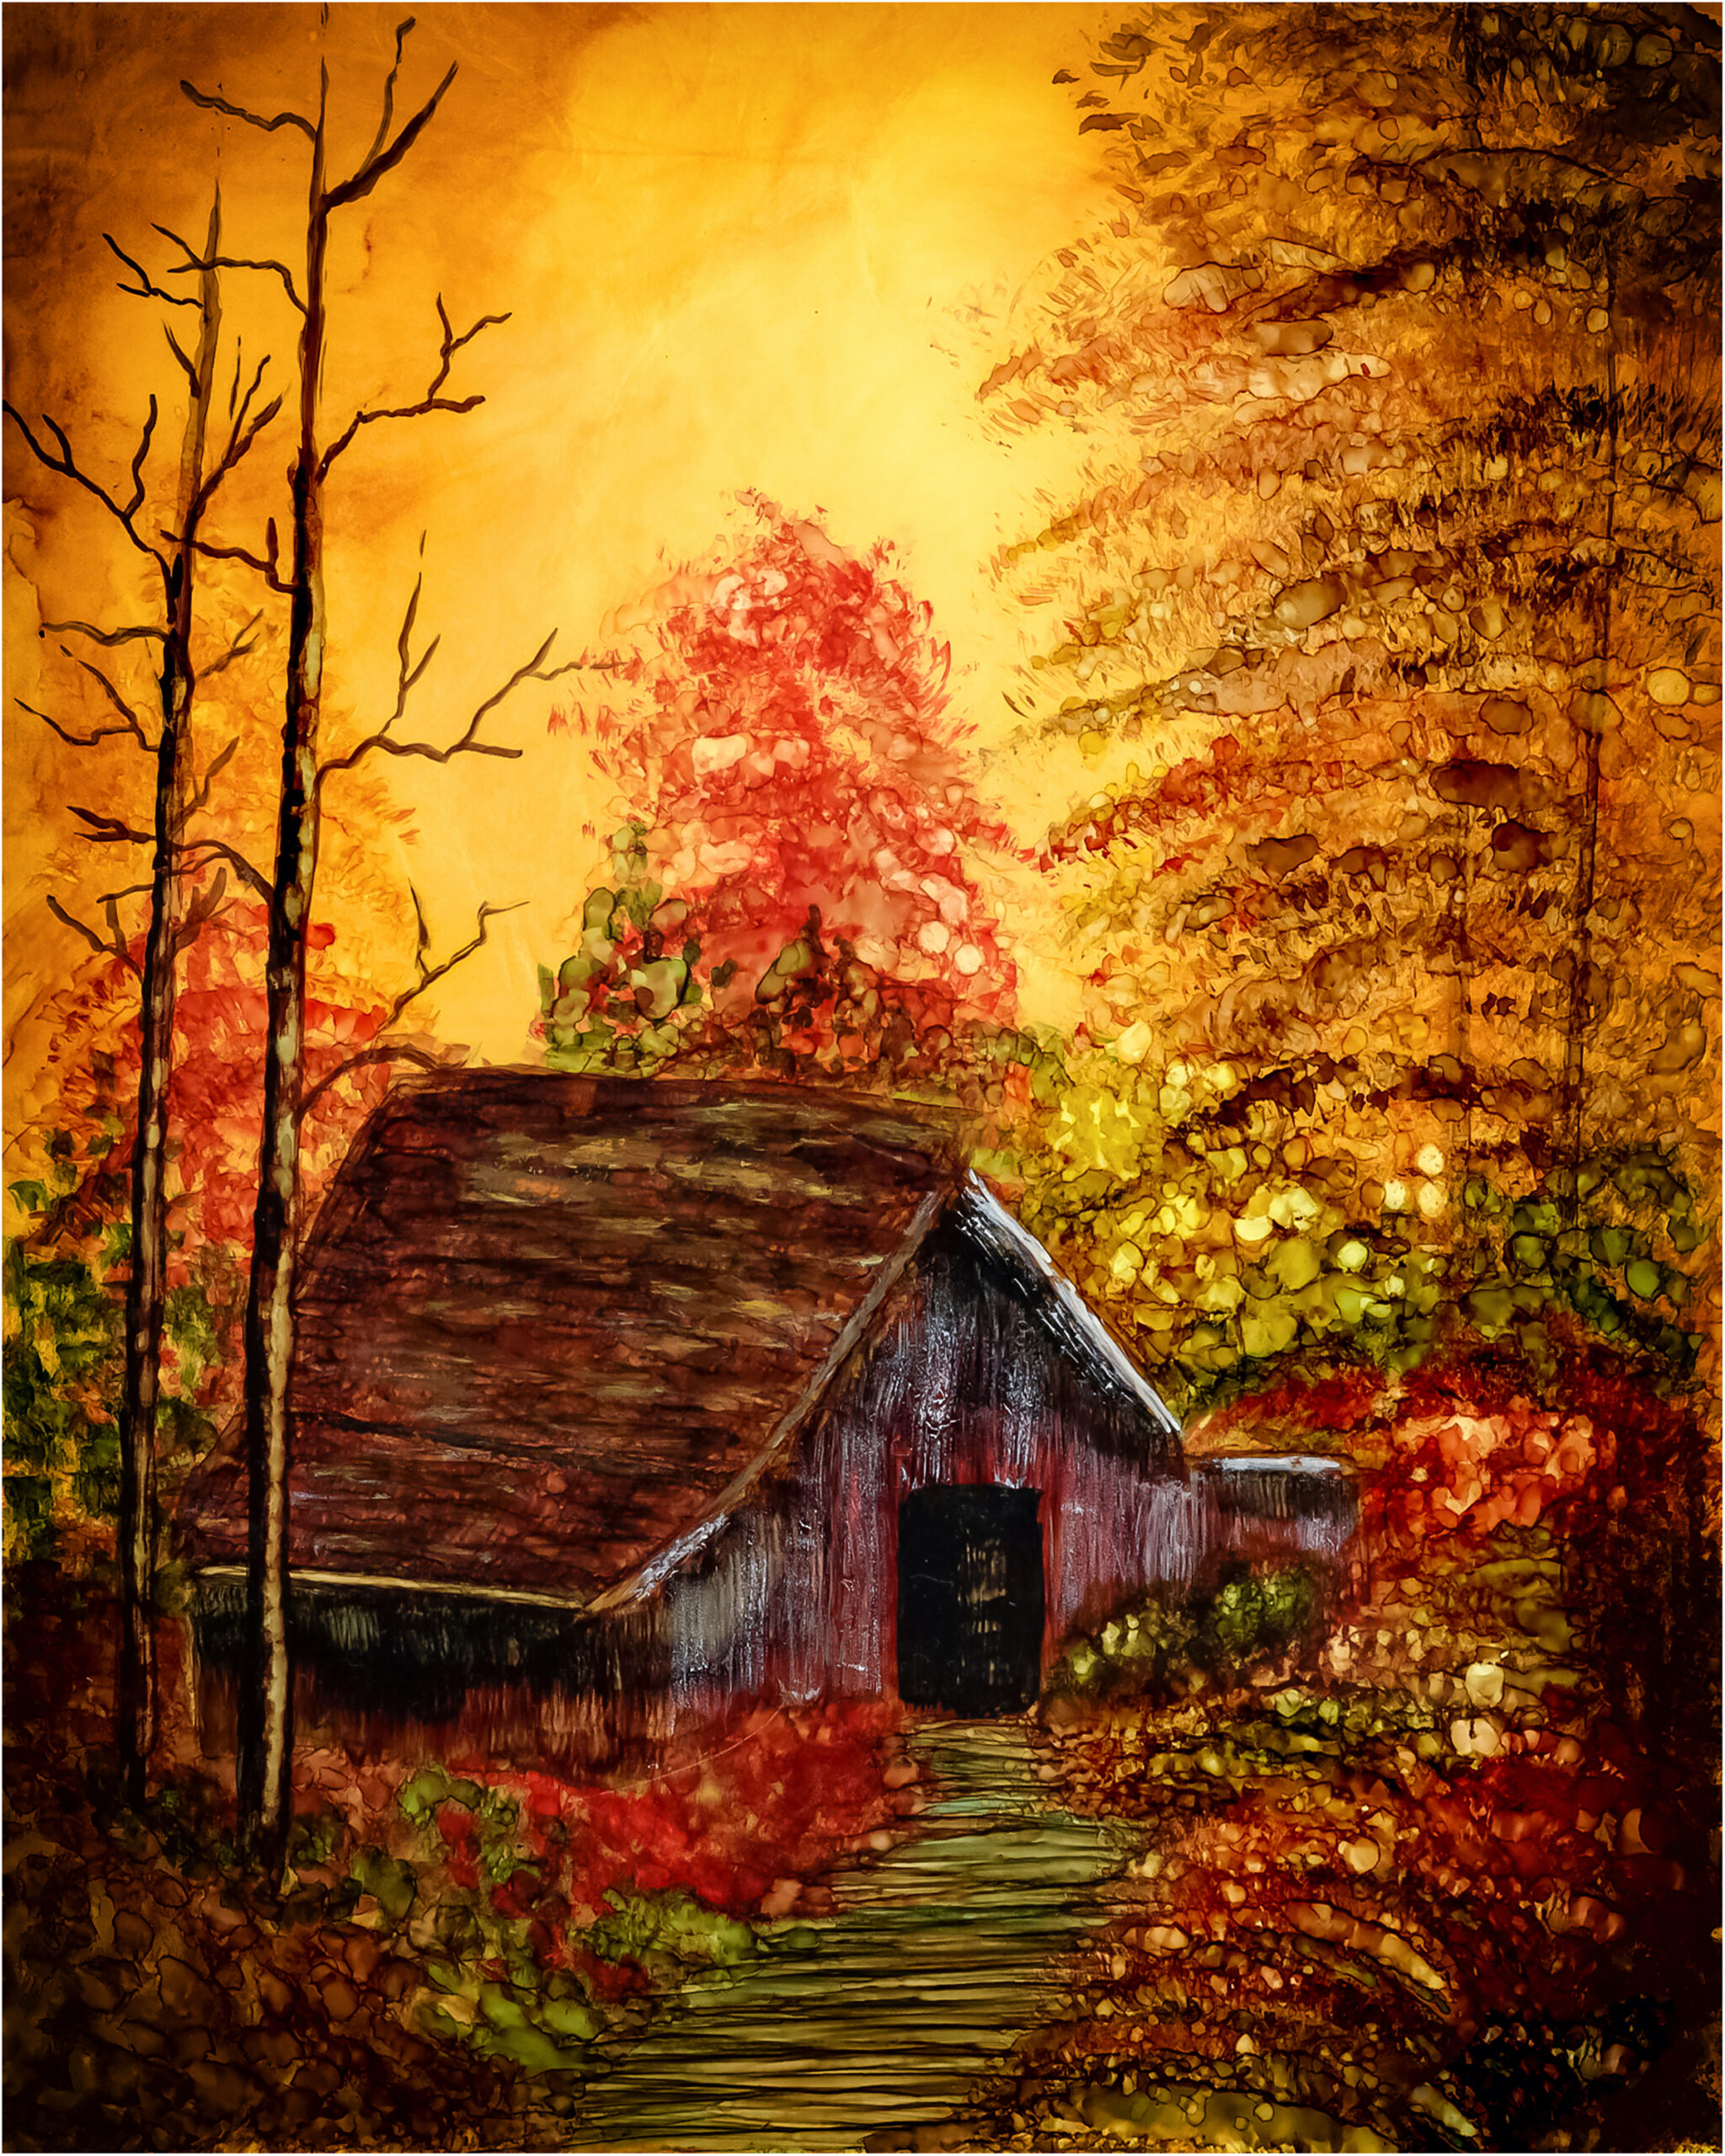 Landscape Painting in Alcohol Ink by Korinne Carpino